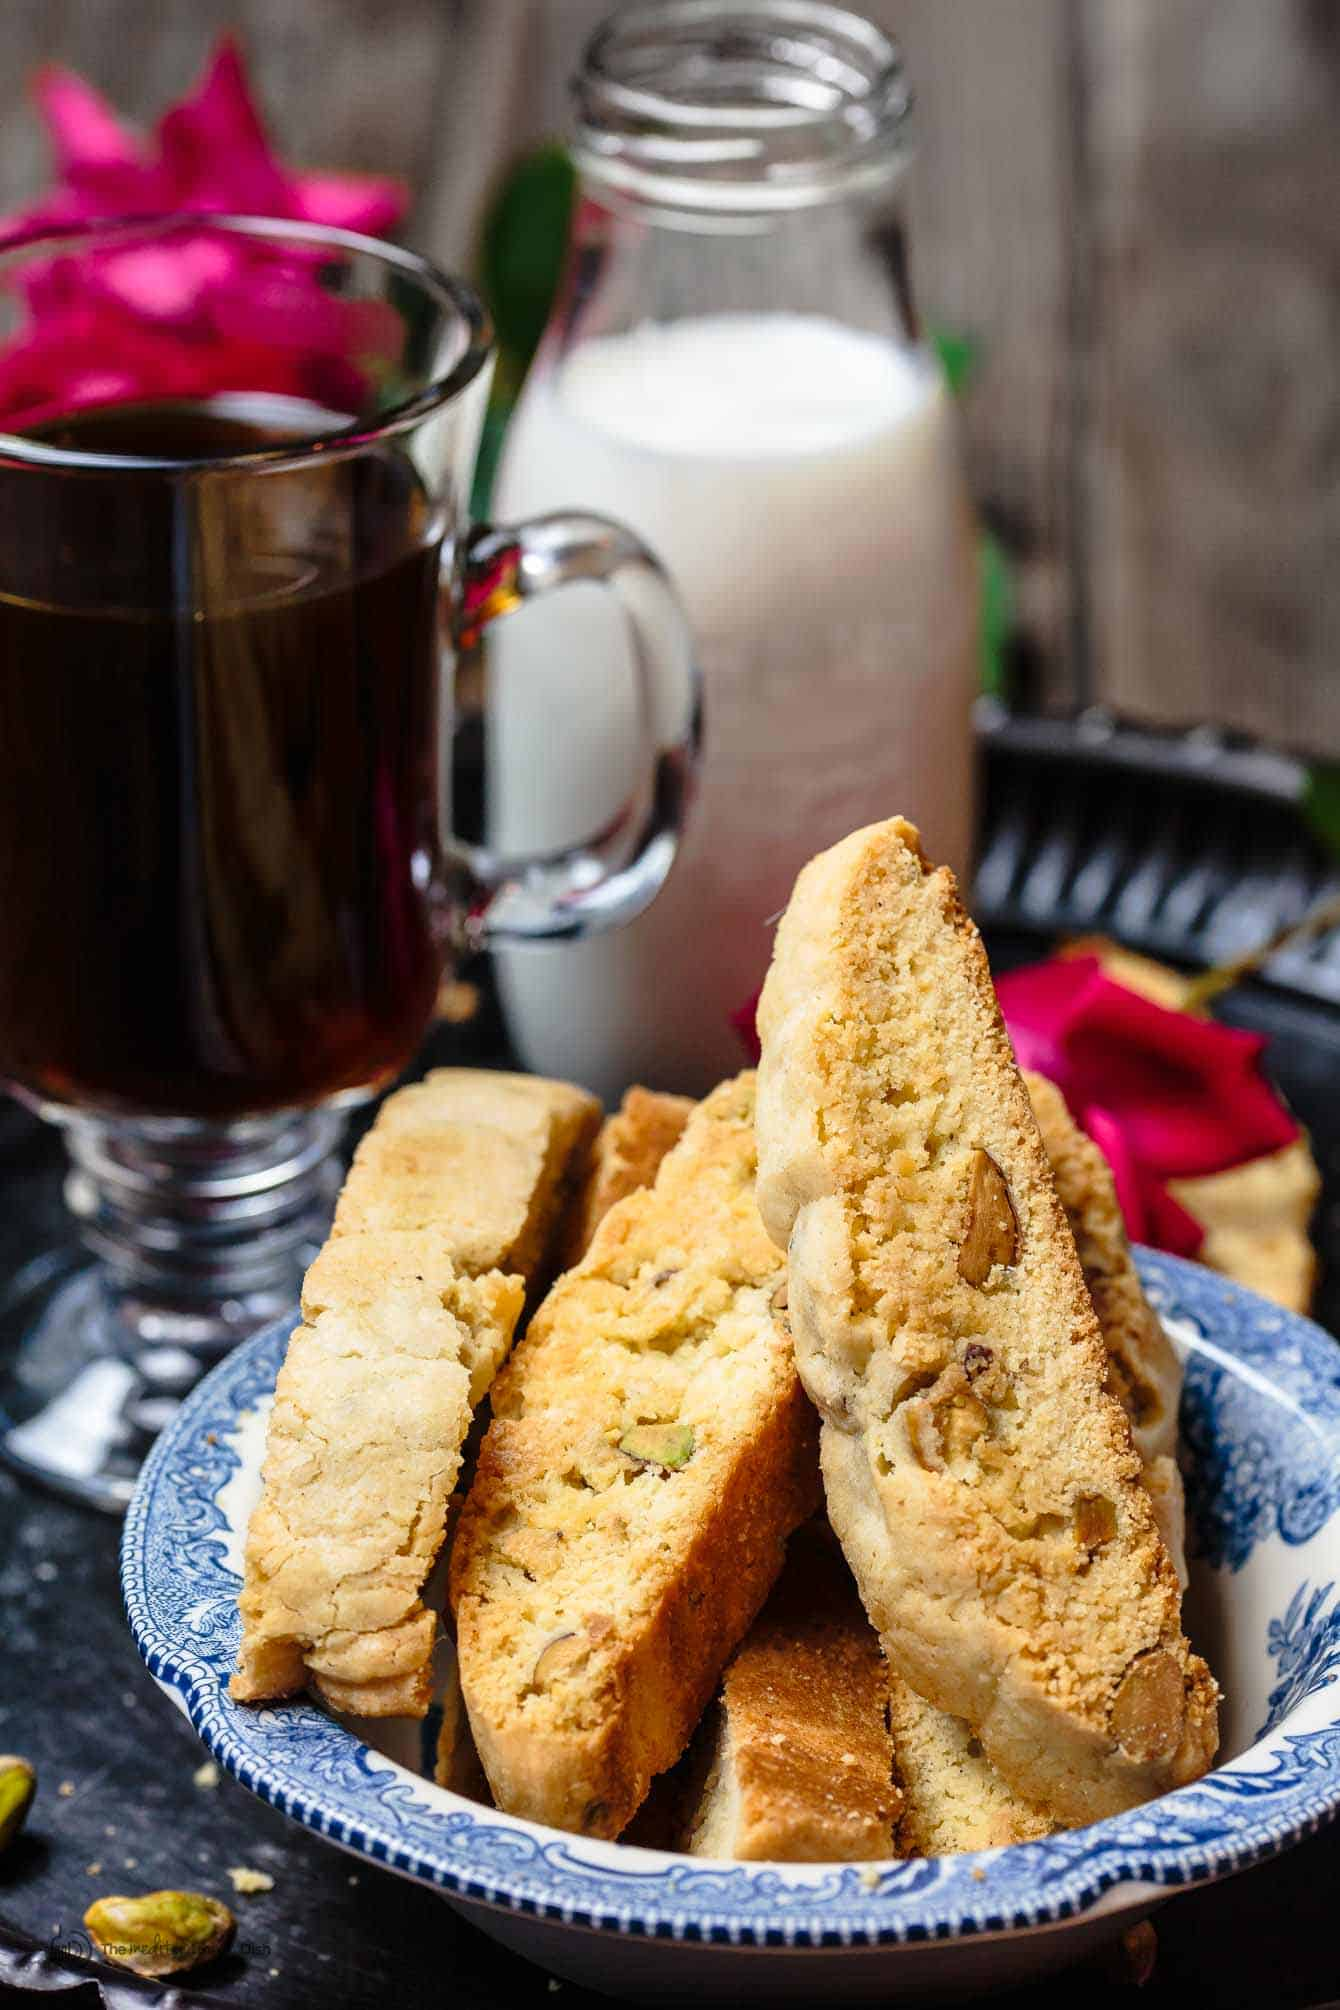 Italian biscotti served with a side of coffee and milk